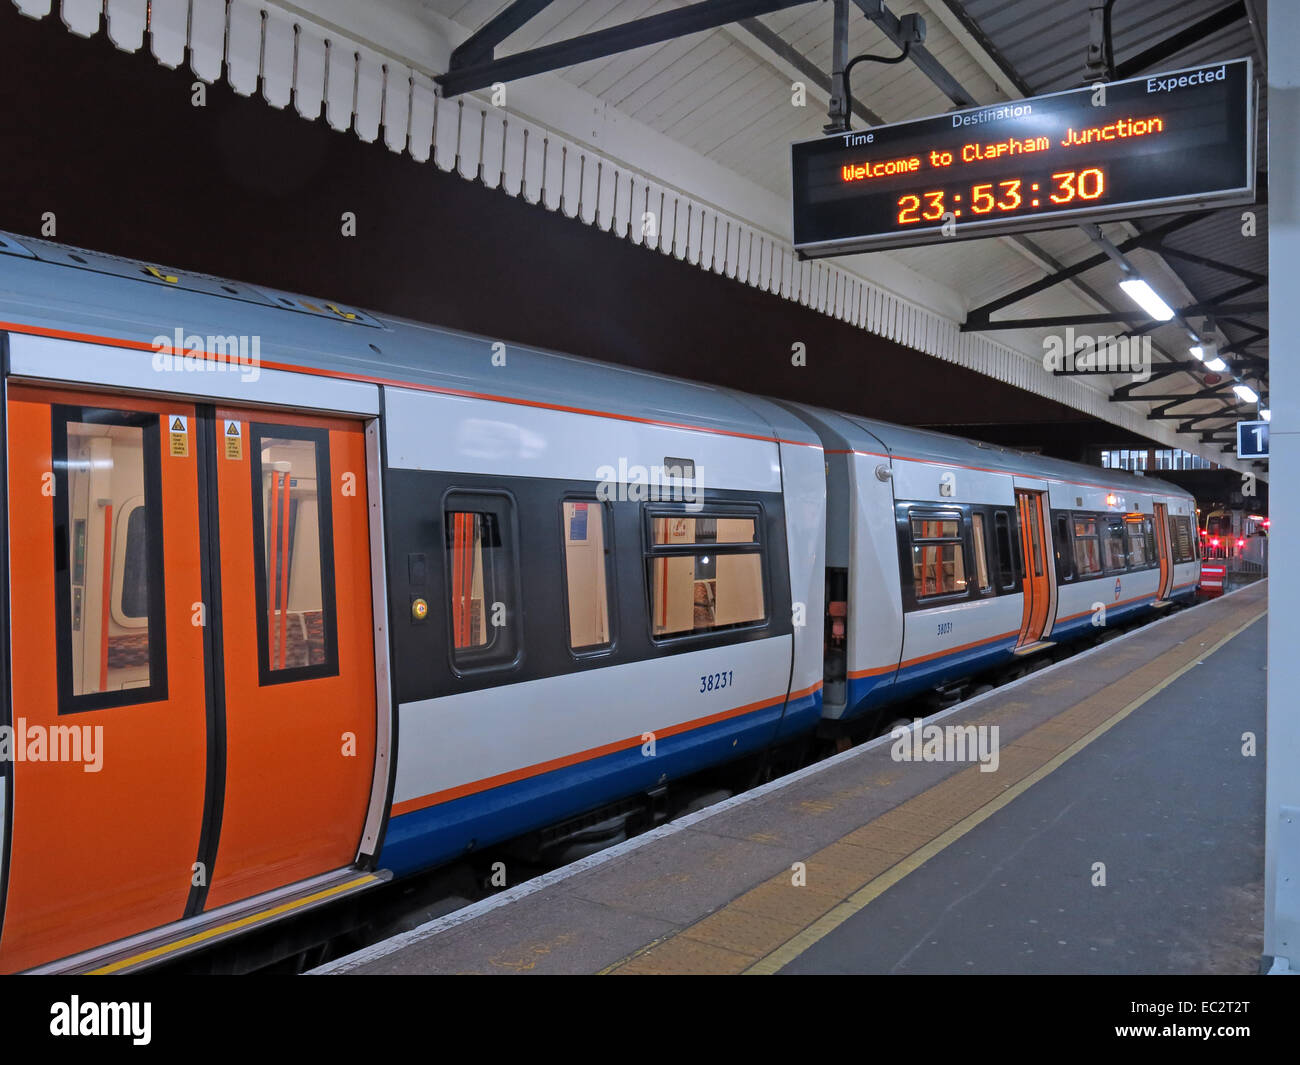 Welcome to Clapham Junction railway station at night, London's busiest, England, UK - Stock Image